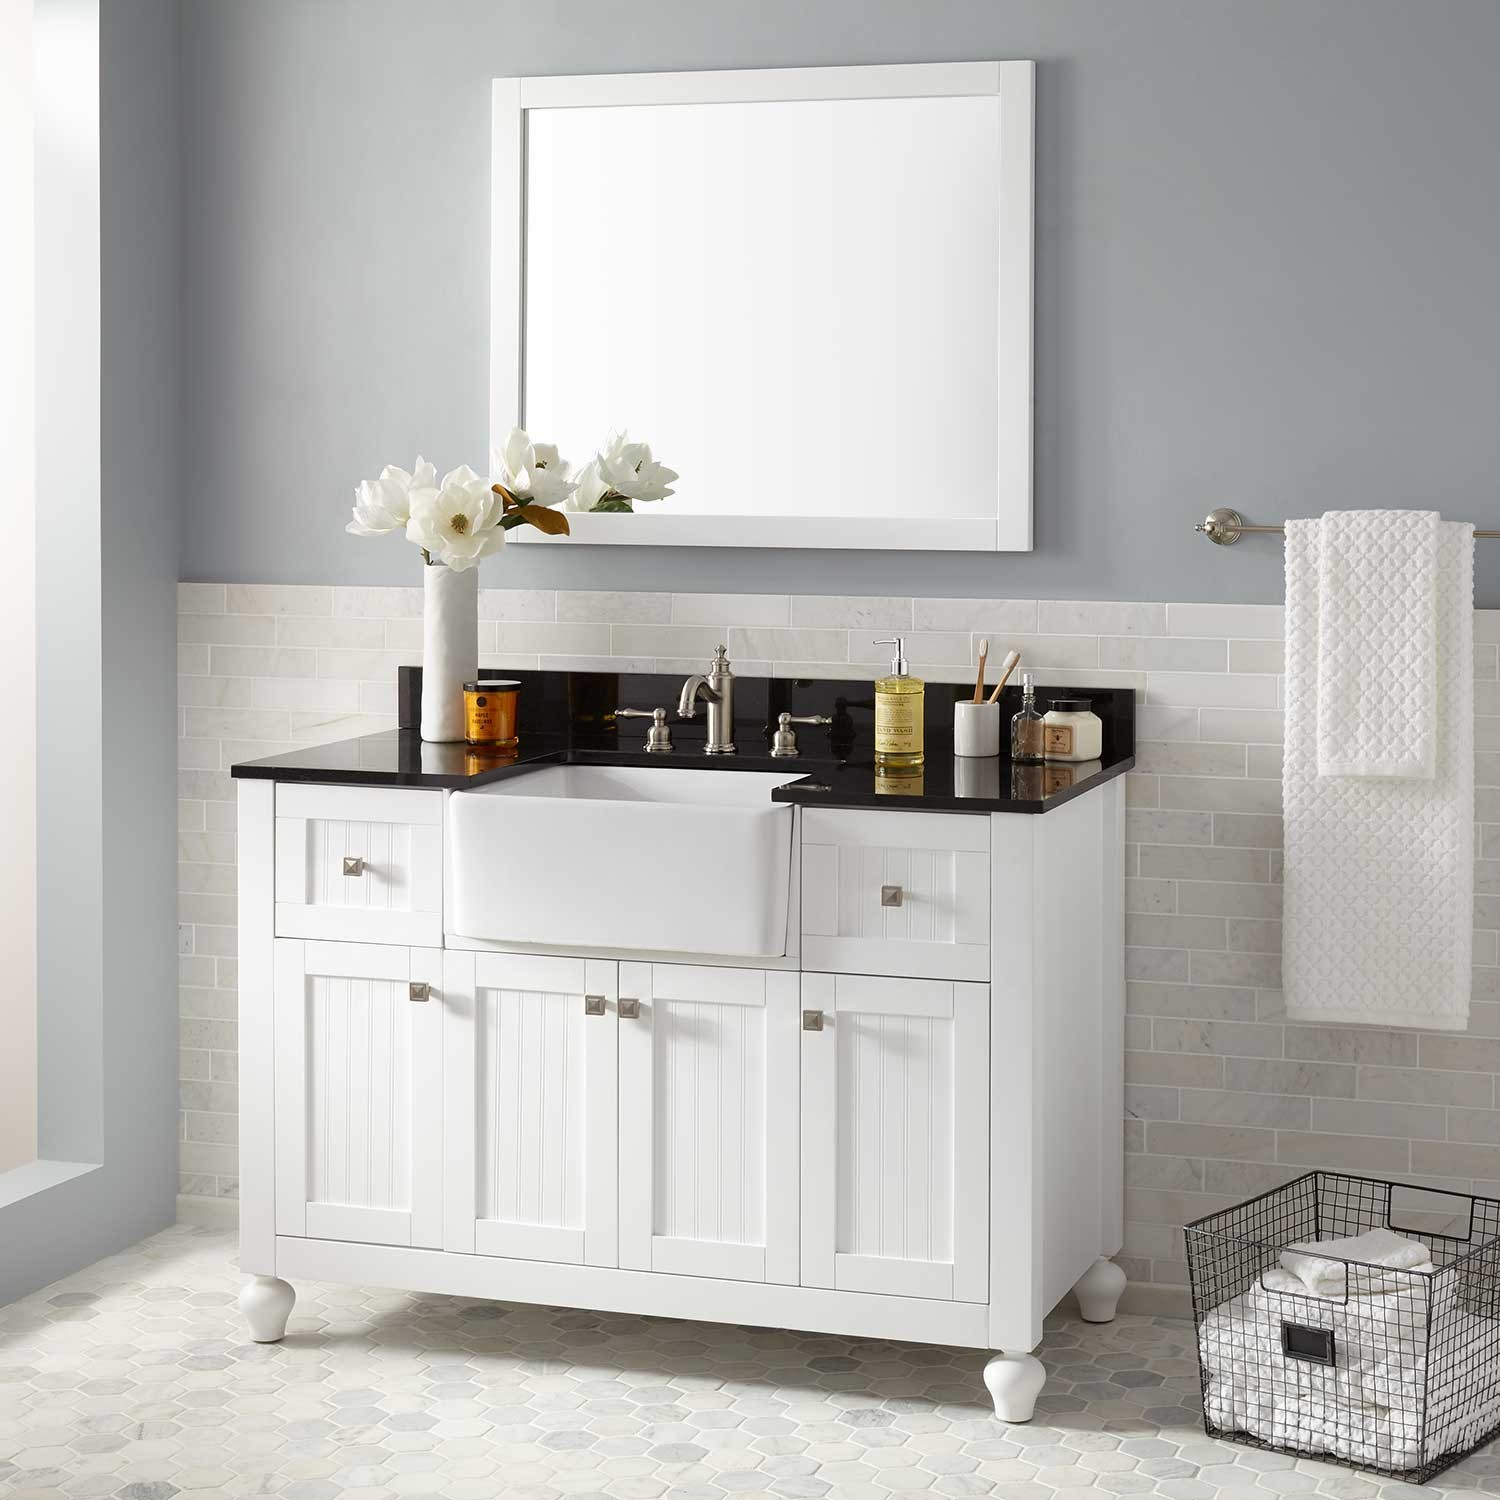 "Epic 48"" Nellie Farmhouse Sink Vanity - White - Bathroom intended for Farmhouse Sink In Bathroom"